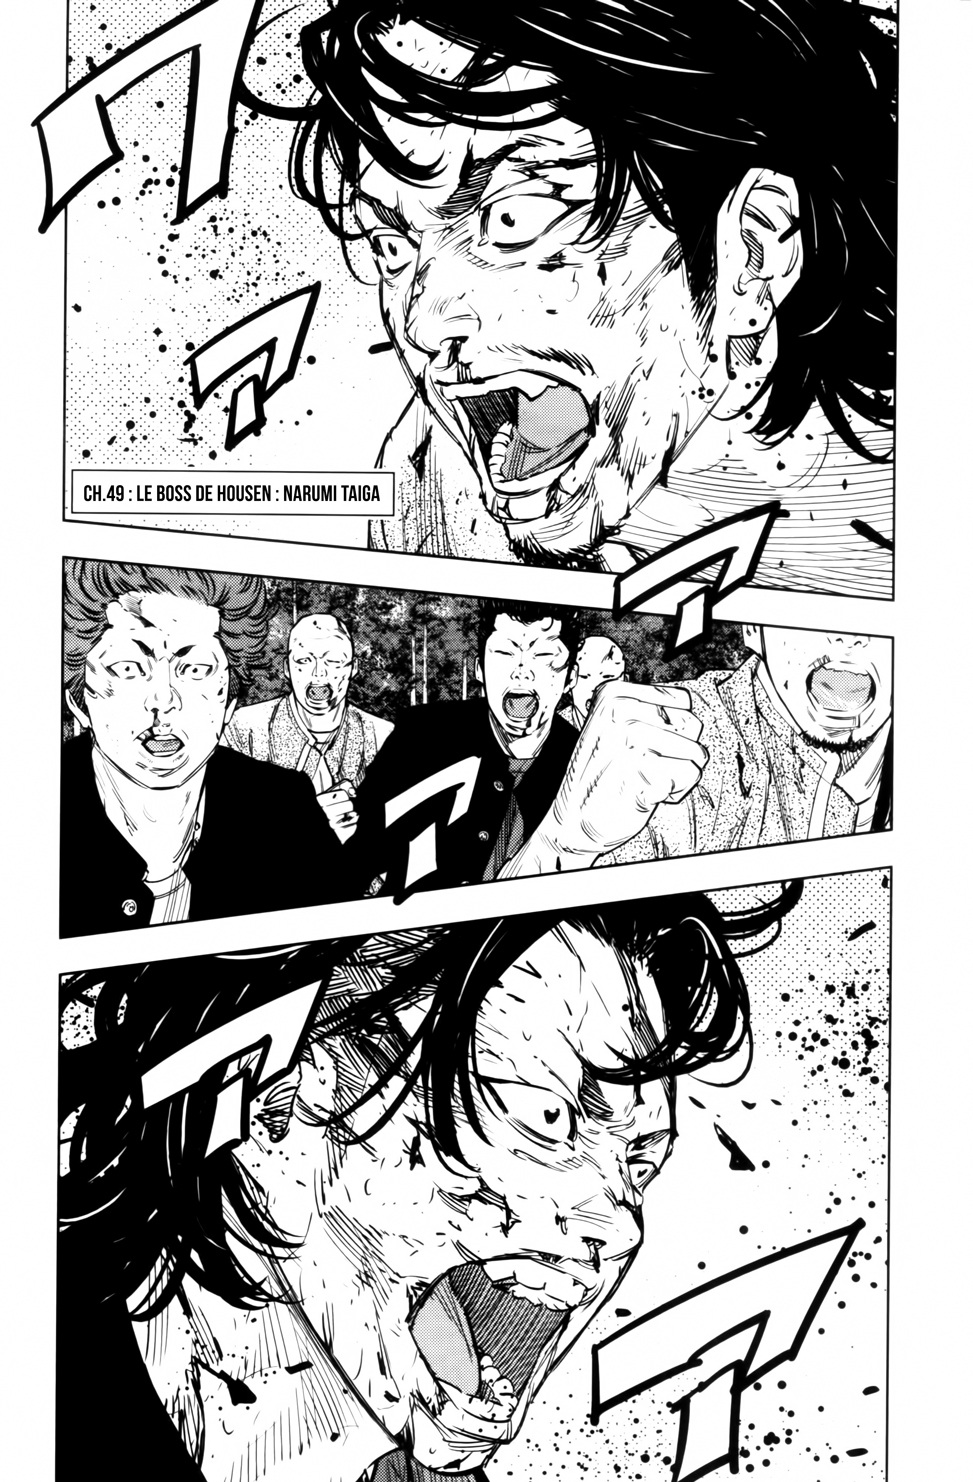 Crows Zero II 49 VF: Le boss de housen